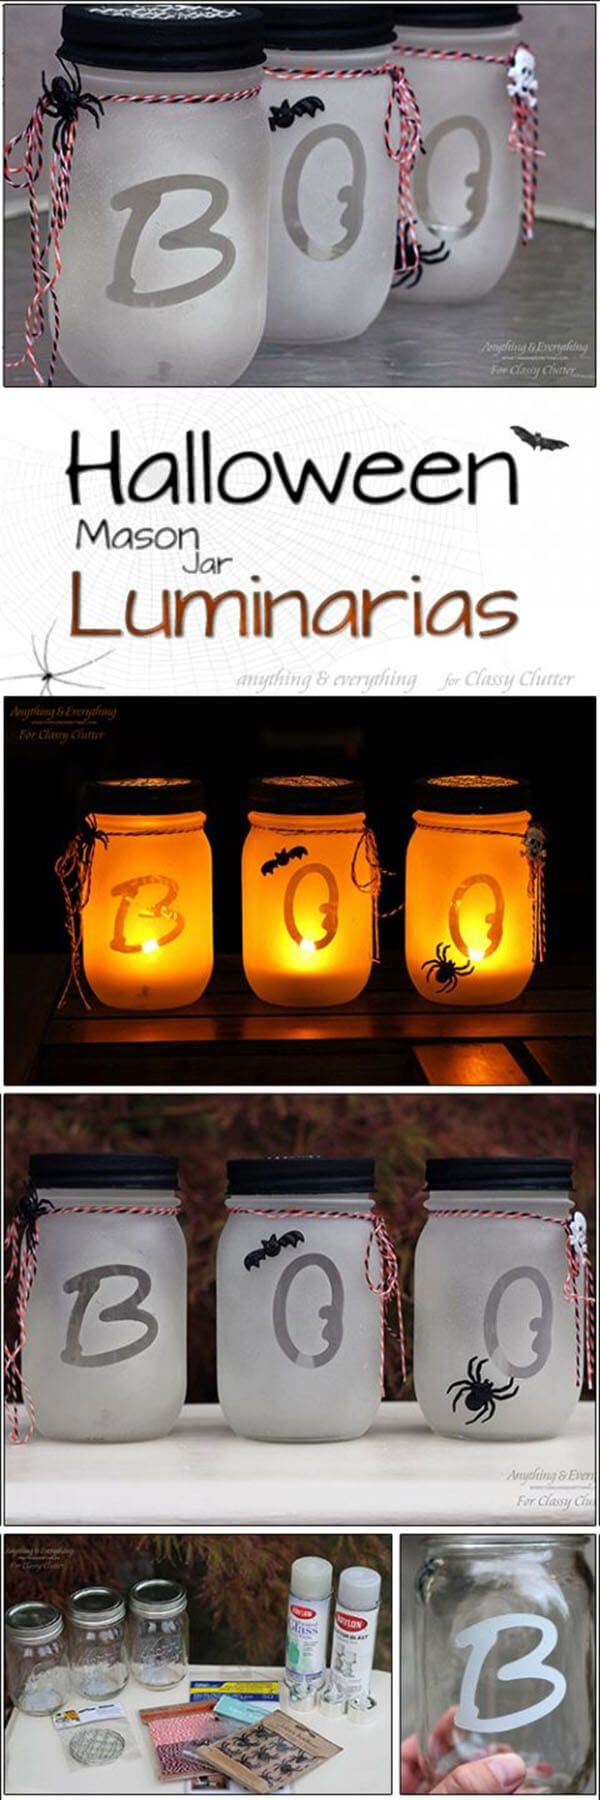 Halloween birthday party decorations - 30 Creative Diy Mason Jar Halloween Crafts To Spice Up Your Fall Decor